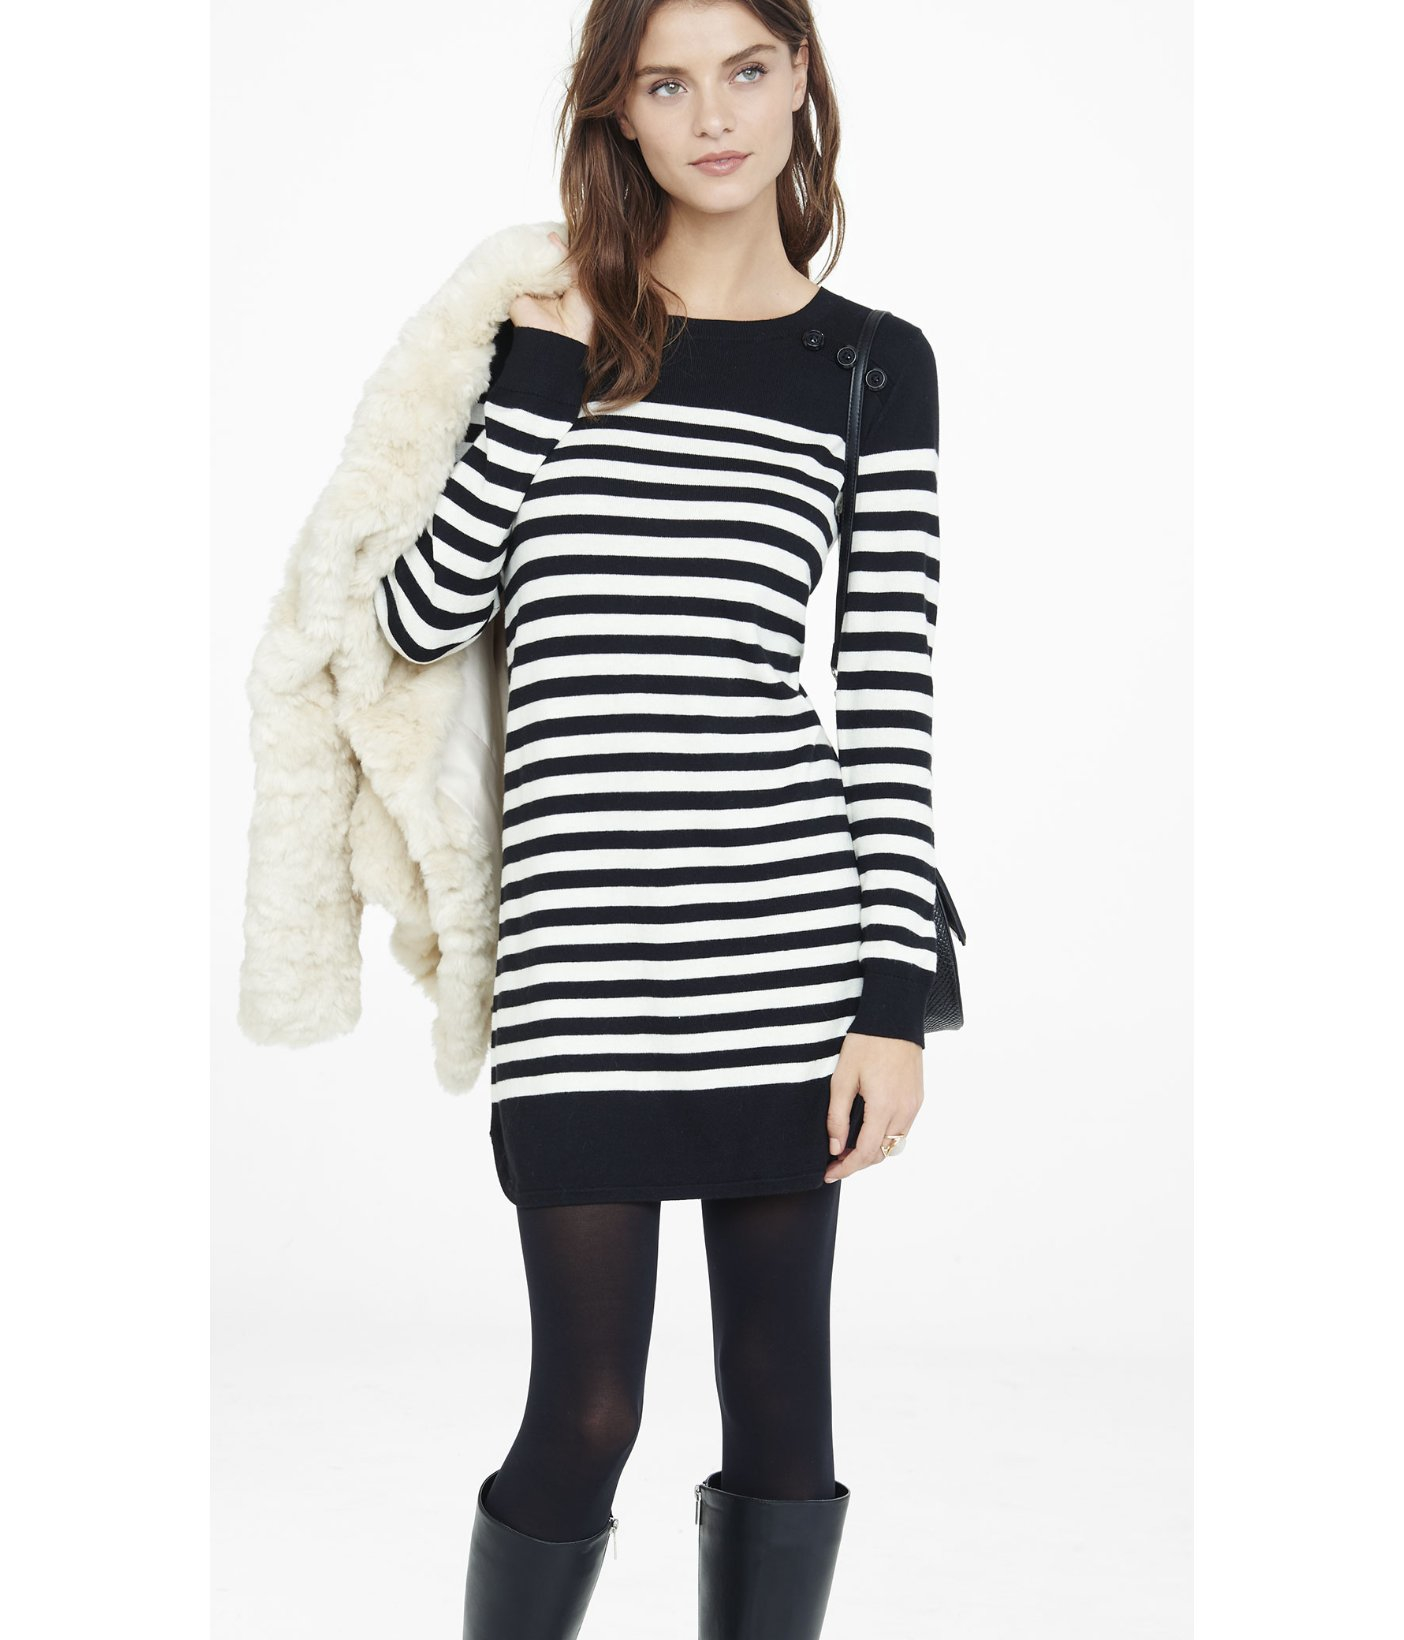 H&M Dress Small Black White Striped Bodycon Long Sleeve Stretch NEW $25 See more like this. New Listing J crew Long Sleeve Sweater Dress Striped Black White size XS Tunic Top. Pre-Owned · 440v.cf · Size (Women's):XS. $ or Best Offer +$ shipping.